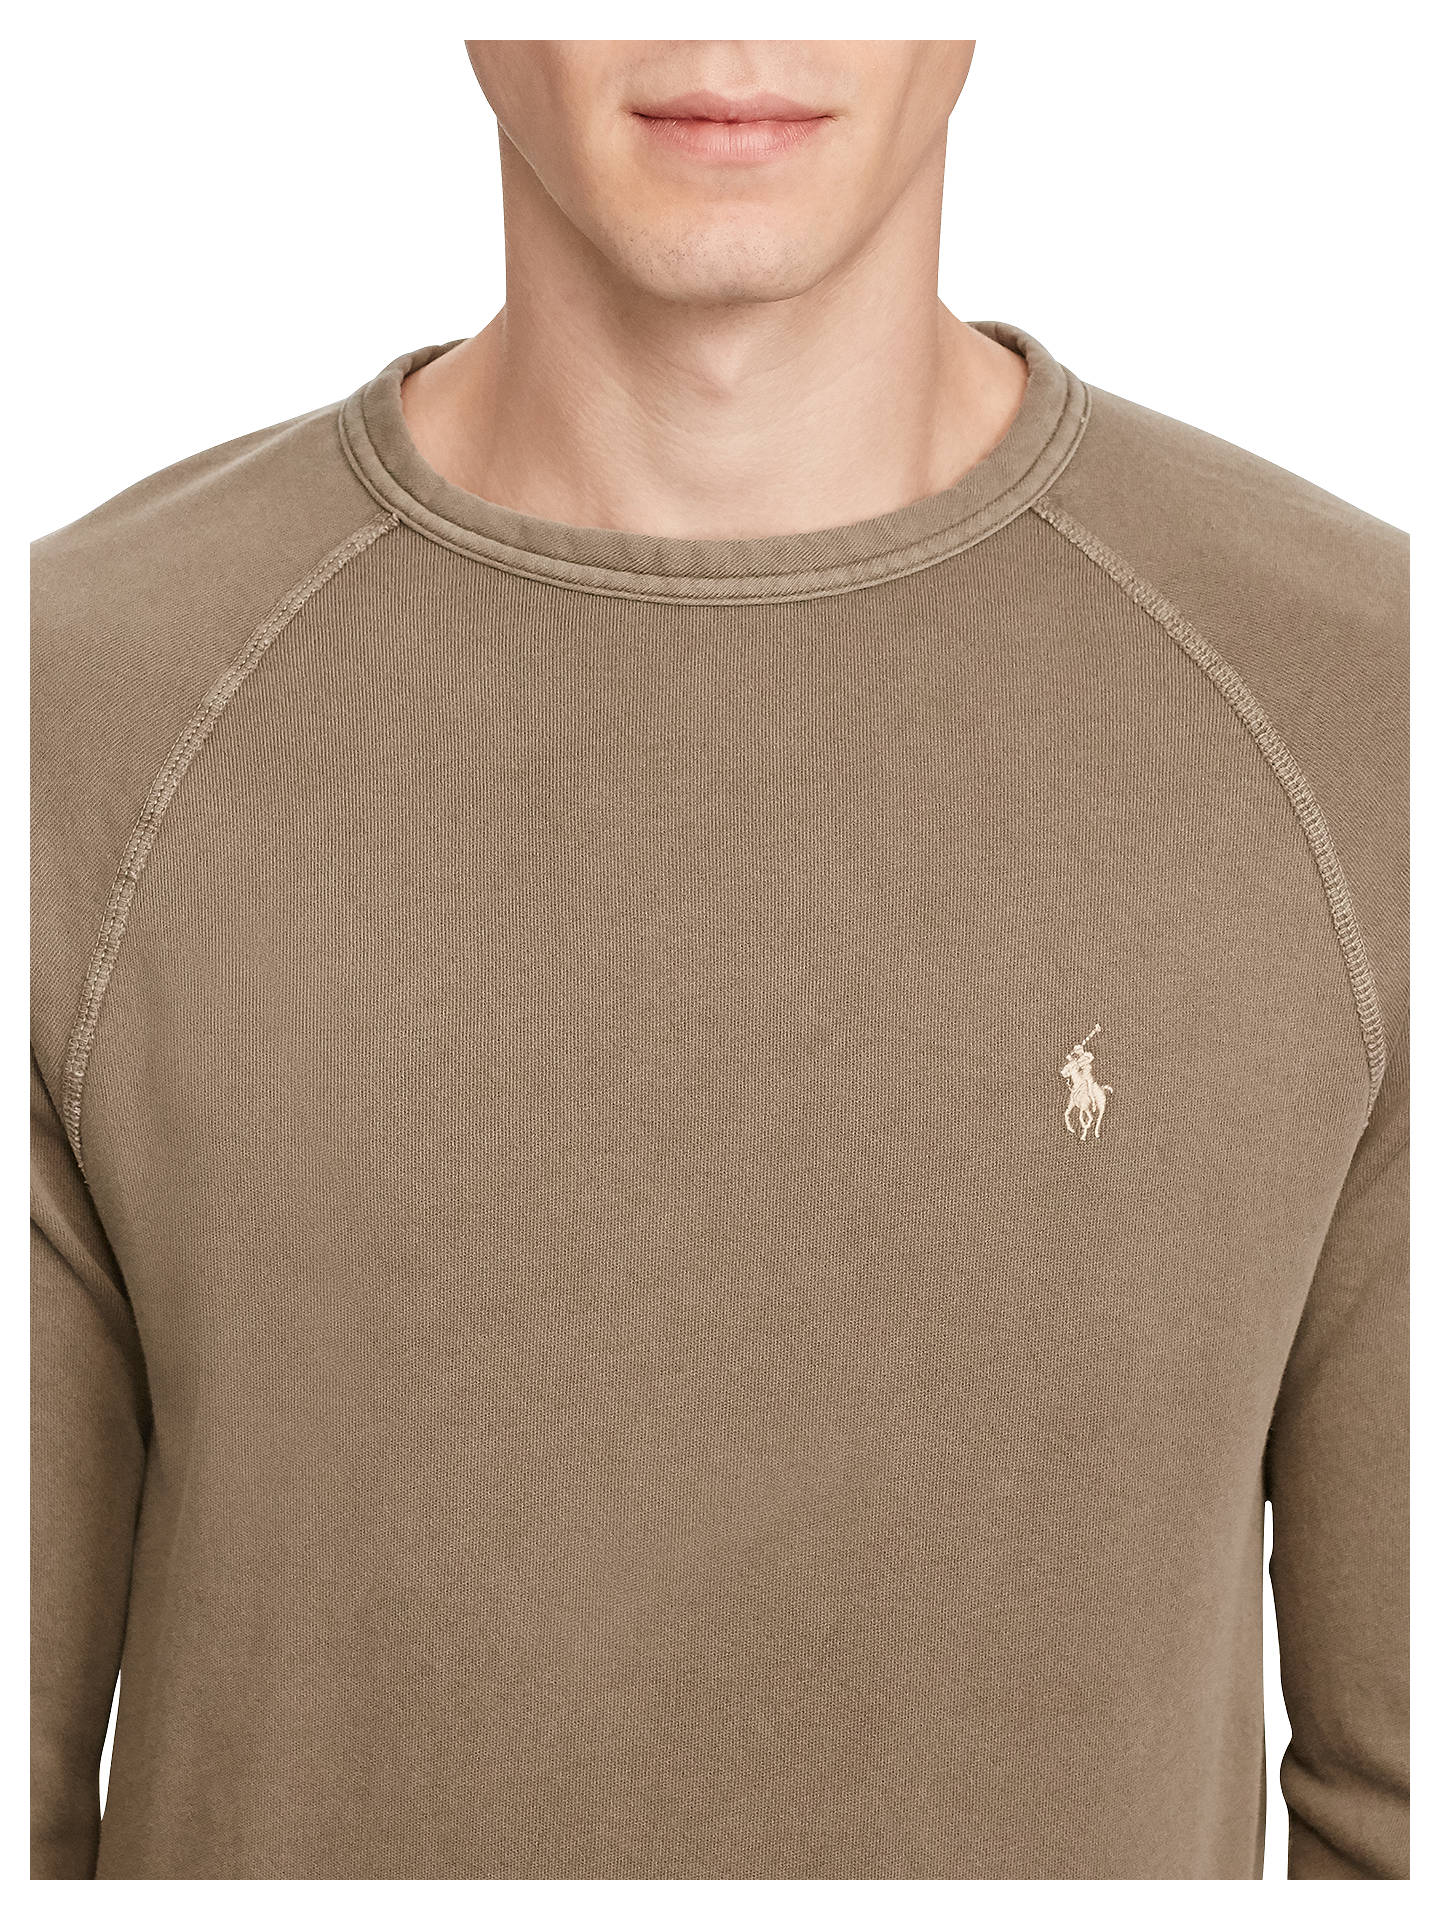 a16dd9f5 Polo Ralph Lauren Classic Fit Cotton Spa Terry Sweatshirt at ...